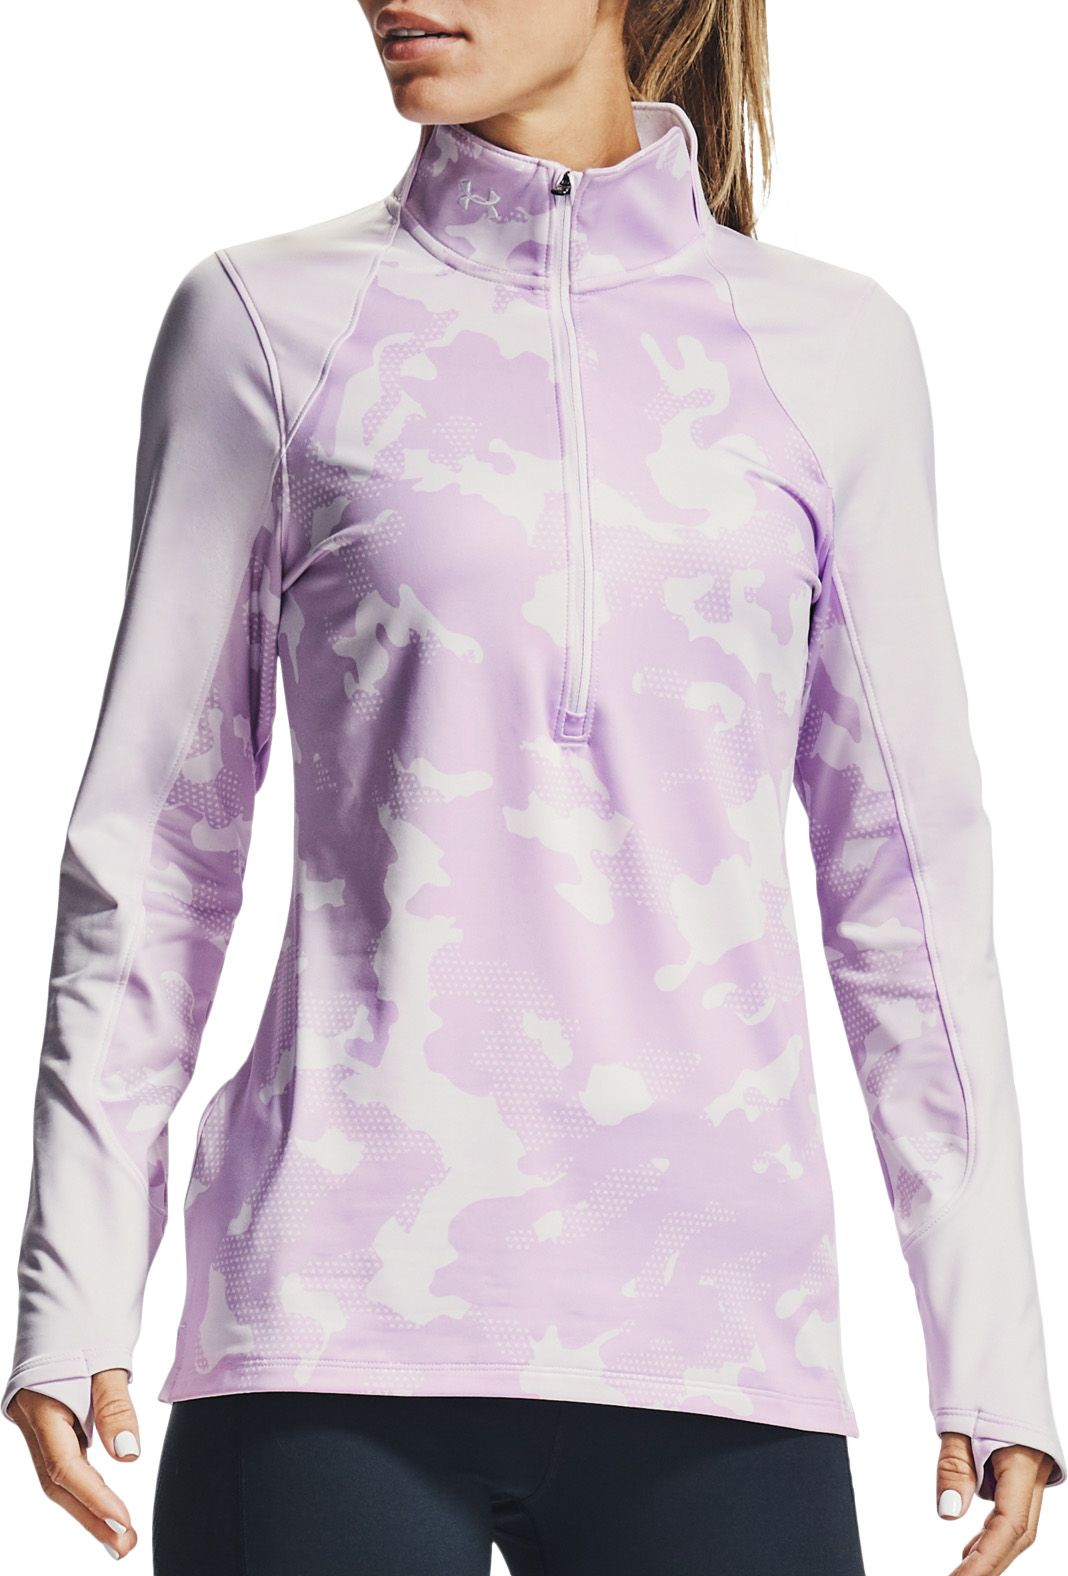 Under Armour Women's ColdGear Camo 1/2-Zip Long Sleeve Shirt, Large, Crystal Lilac/White